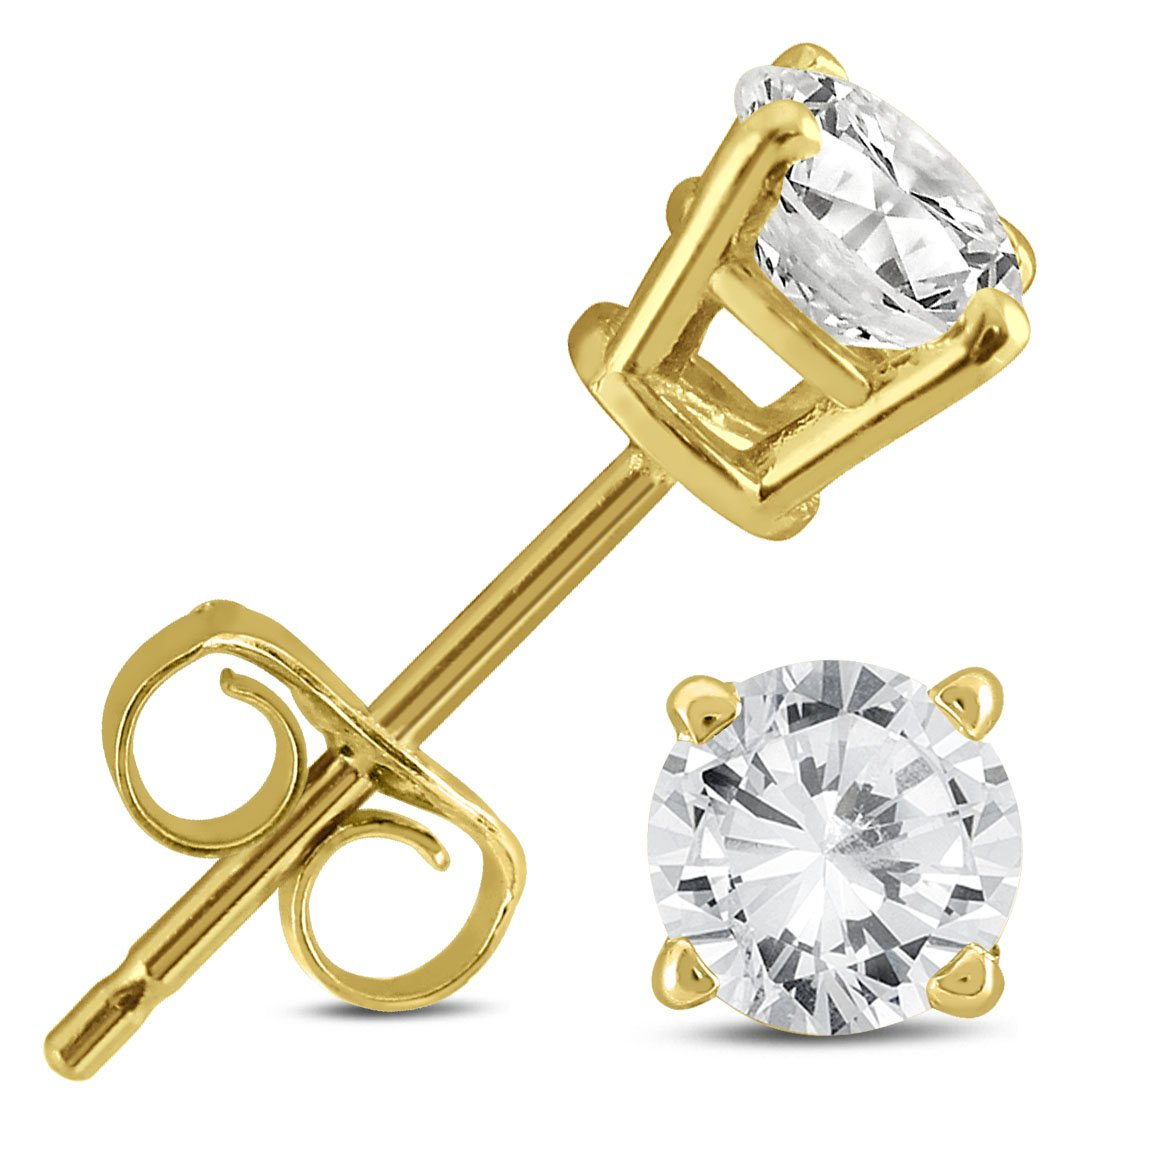 1/2 Carat TW AGS Certified Round Diamond Solitaire Stud Earrings in 14K Yellow Gold